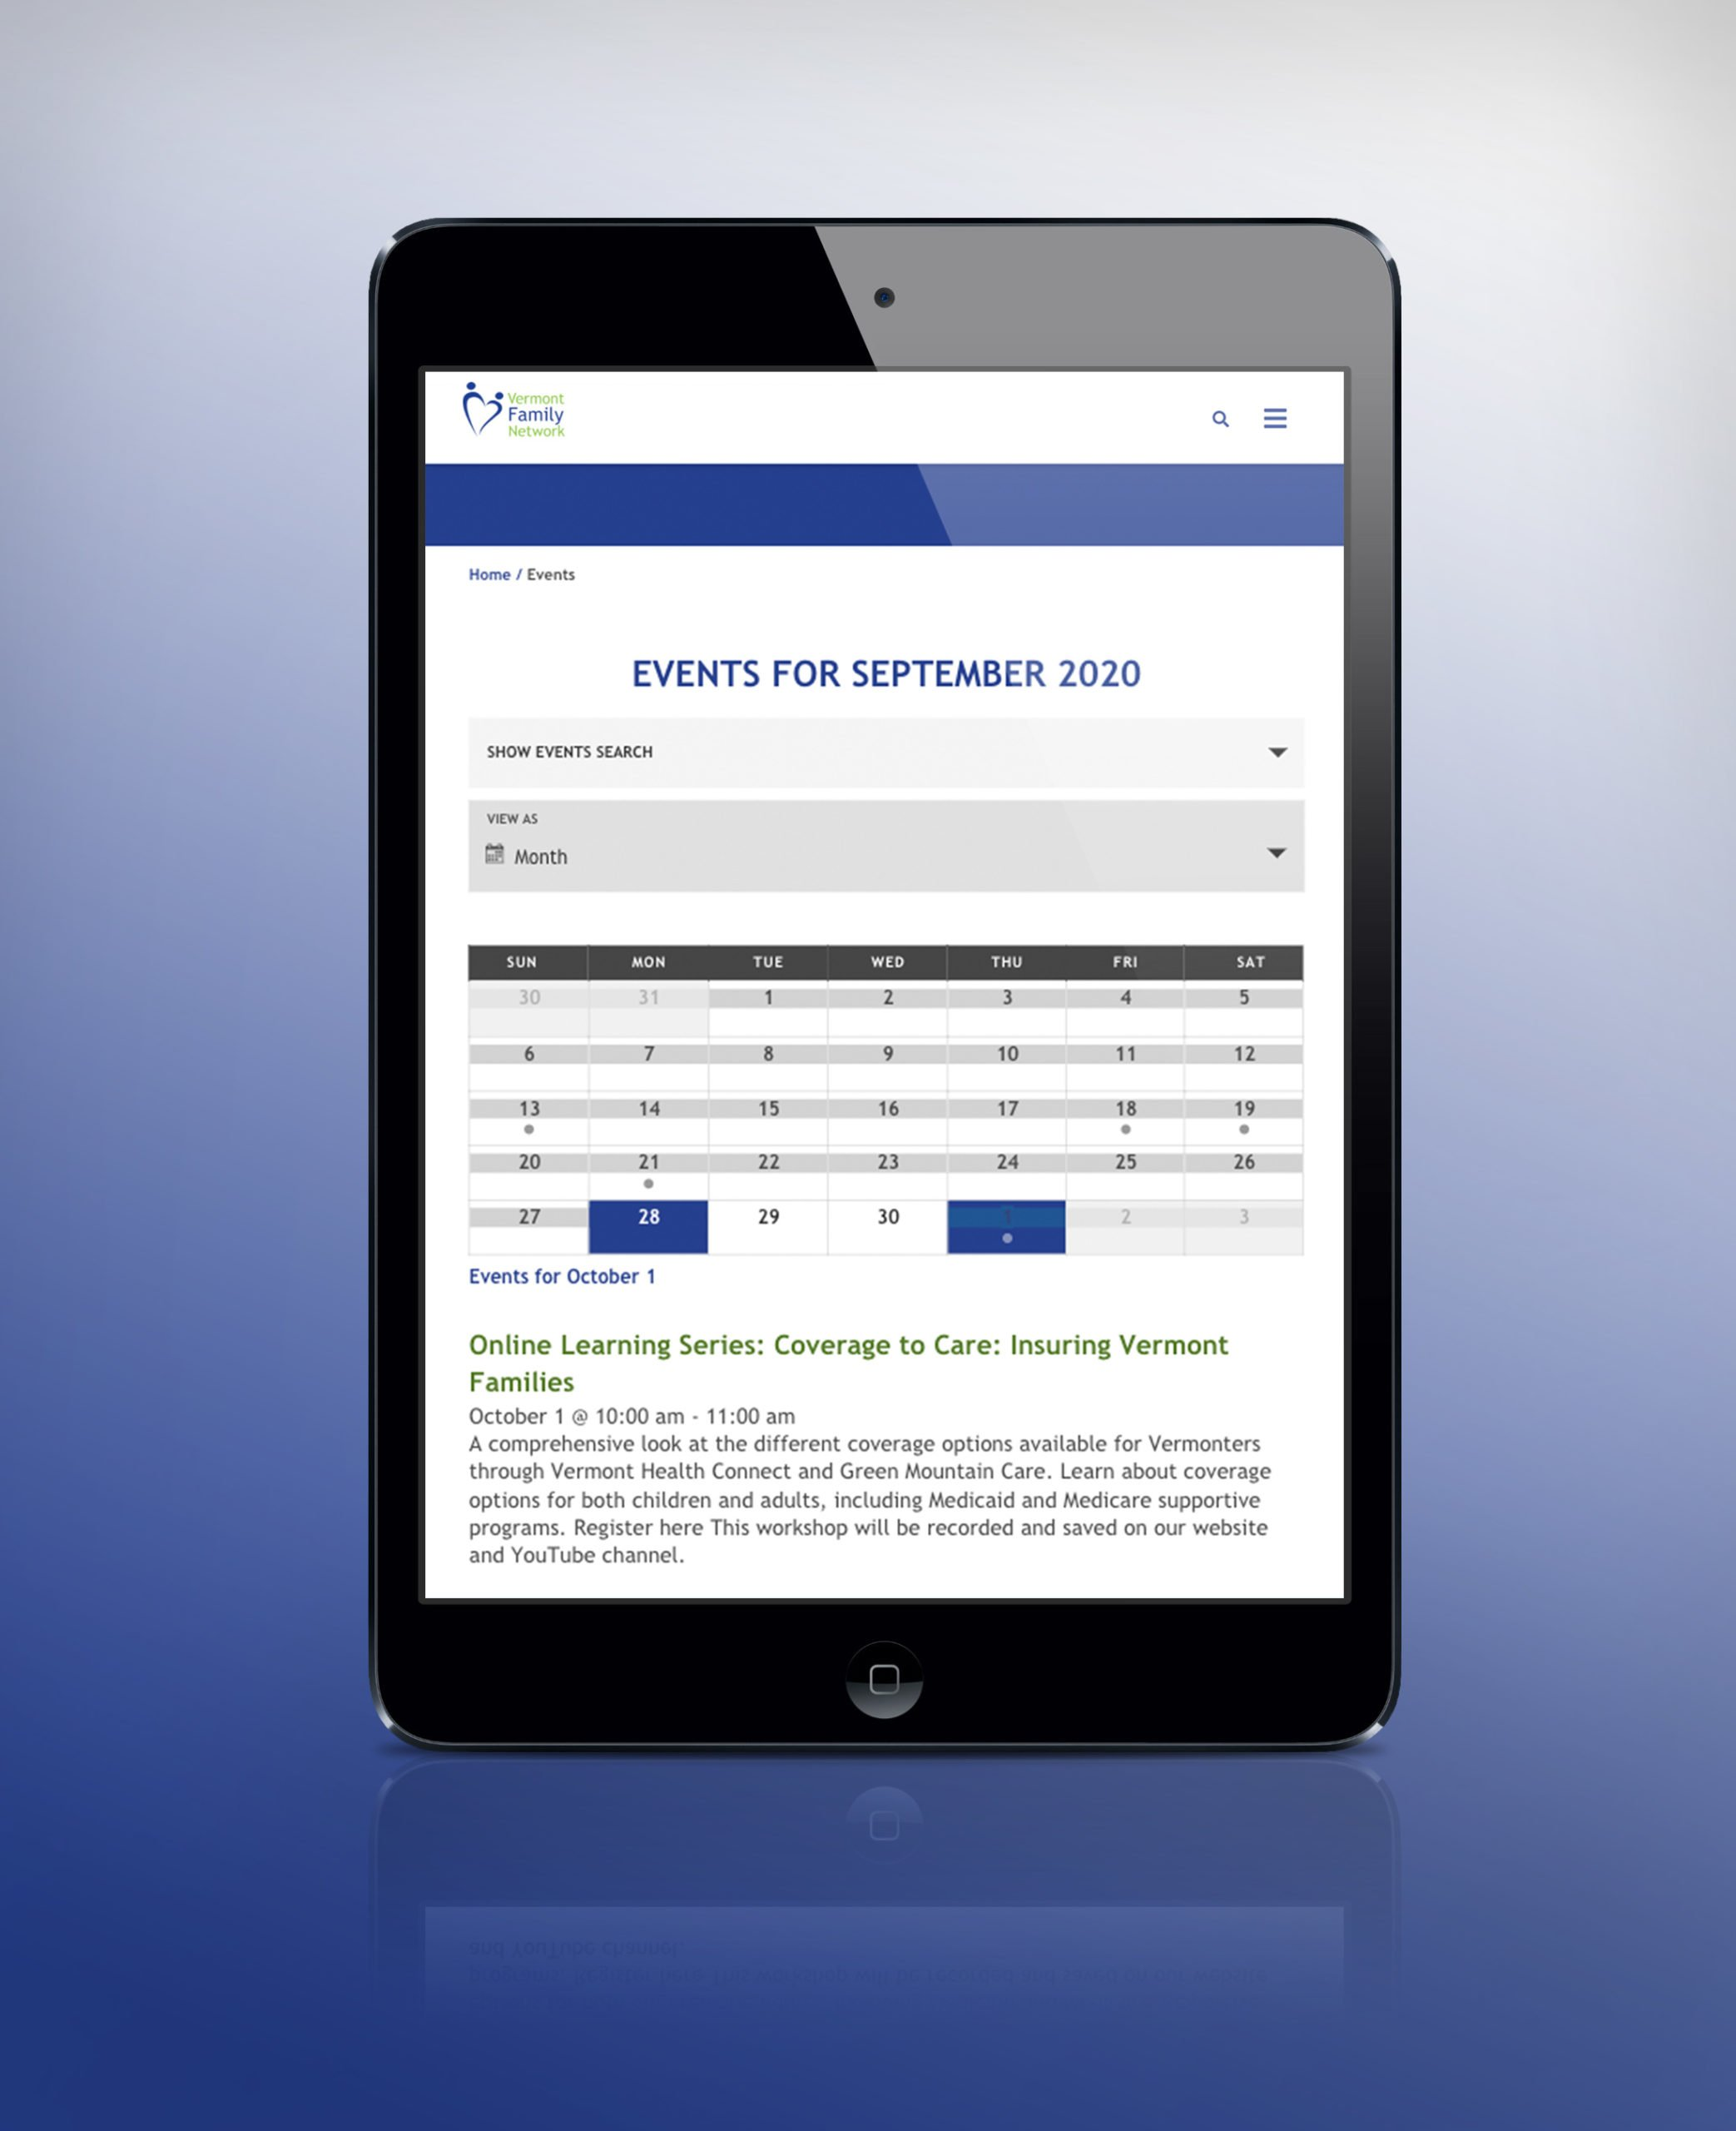 Vermont Family Network Events page on an ipad